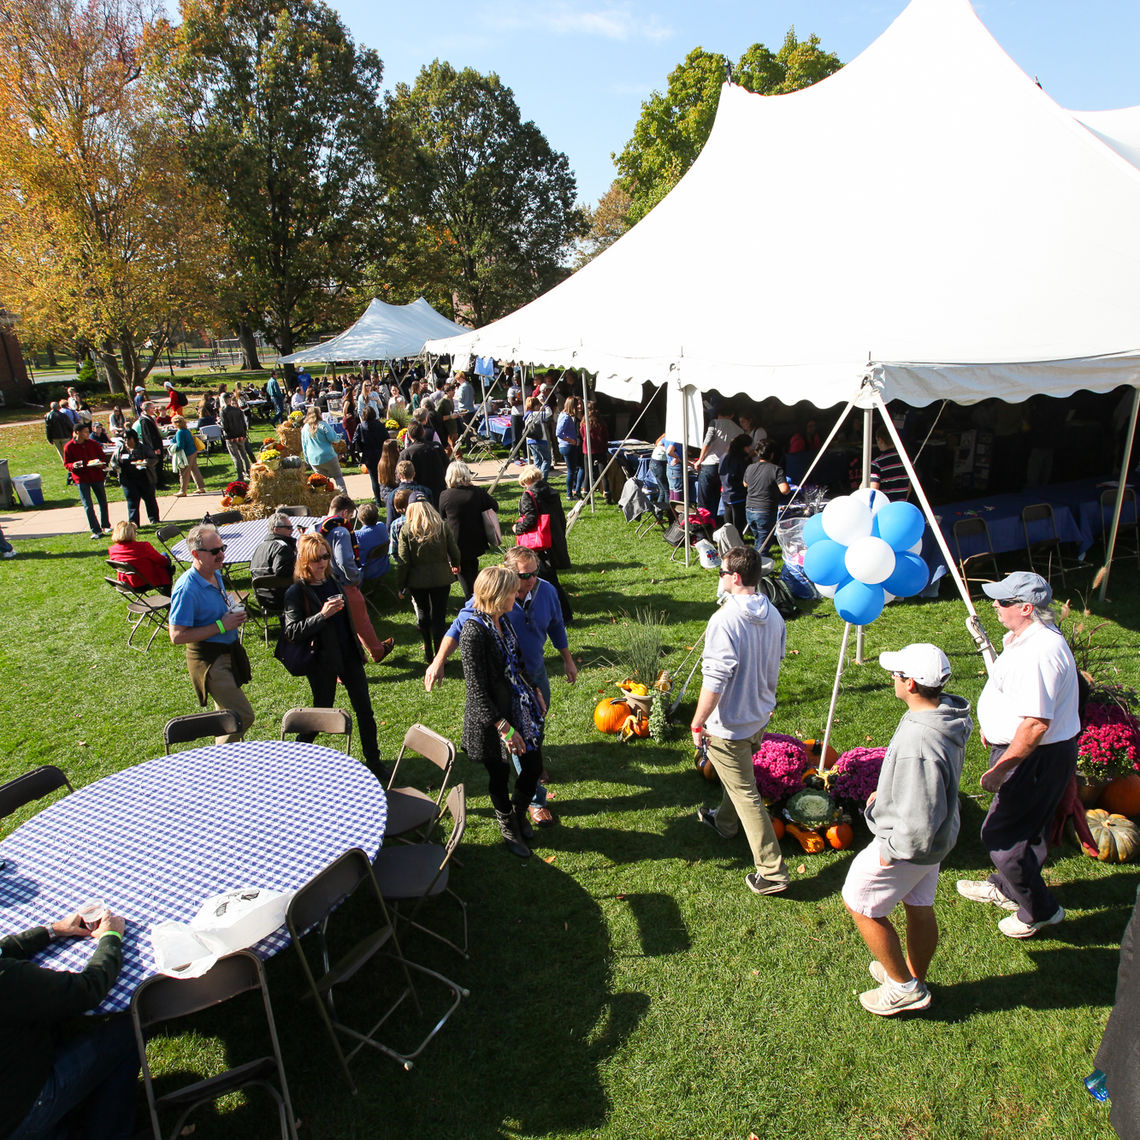 More than 3,000 students, alumni, parents and members of the F&M community turn out for this year's Homecoming & Family Weekend, setting an attendance record.